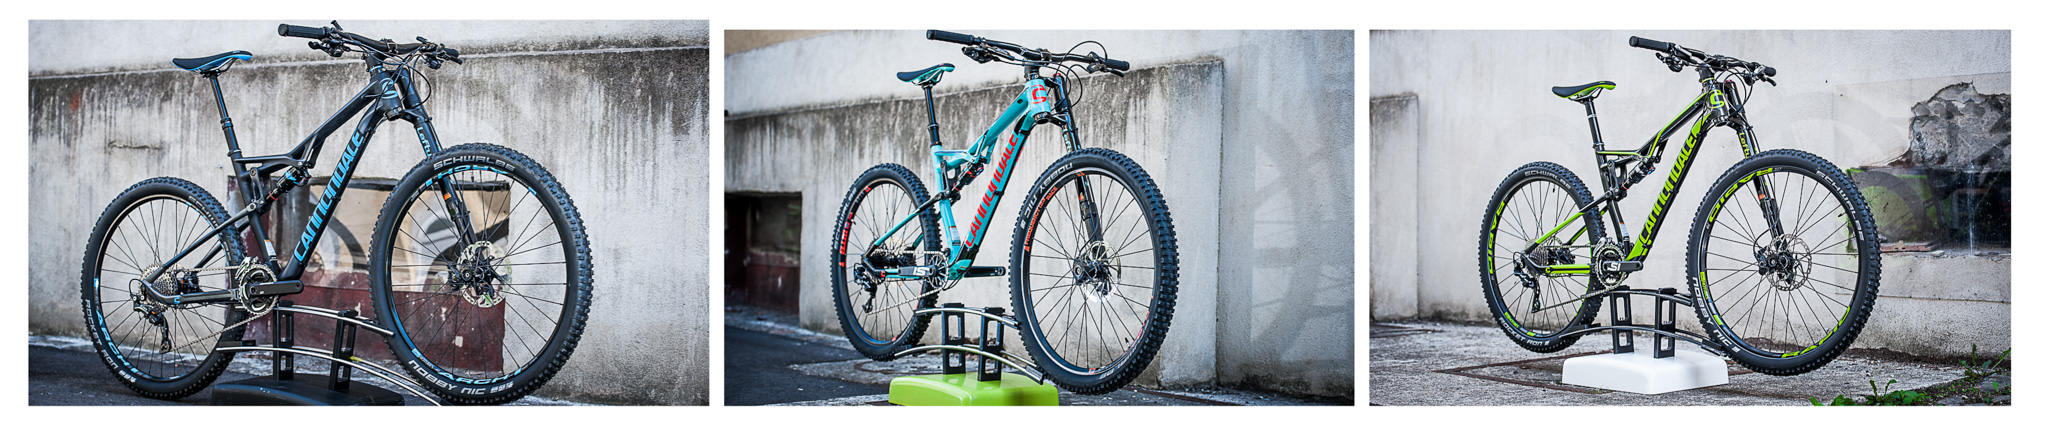 Cannondale-habit-2016-Hi-mod-1-vojo-paul-humbert-first-ride-70